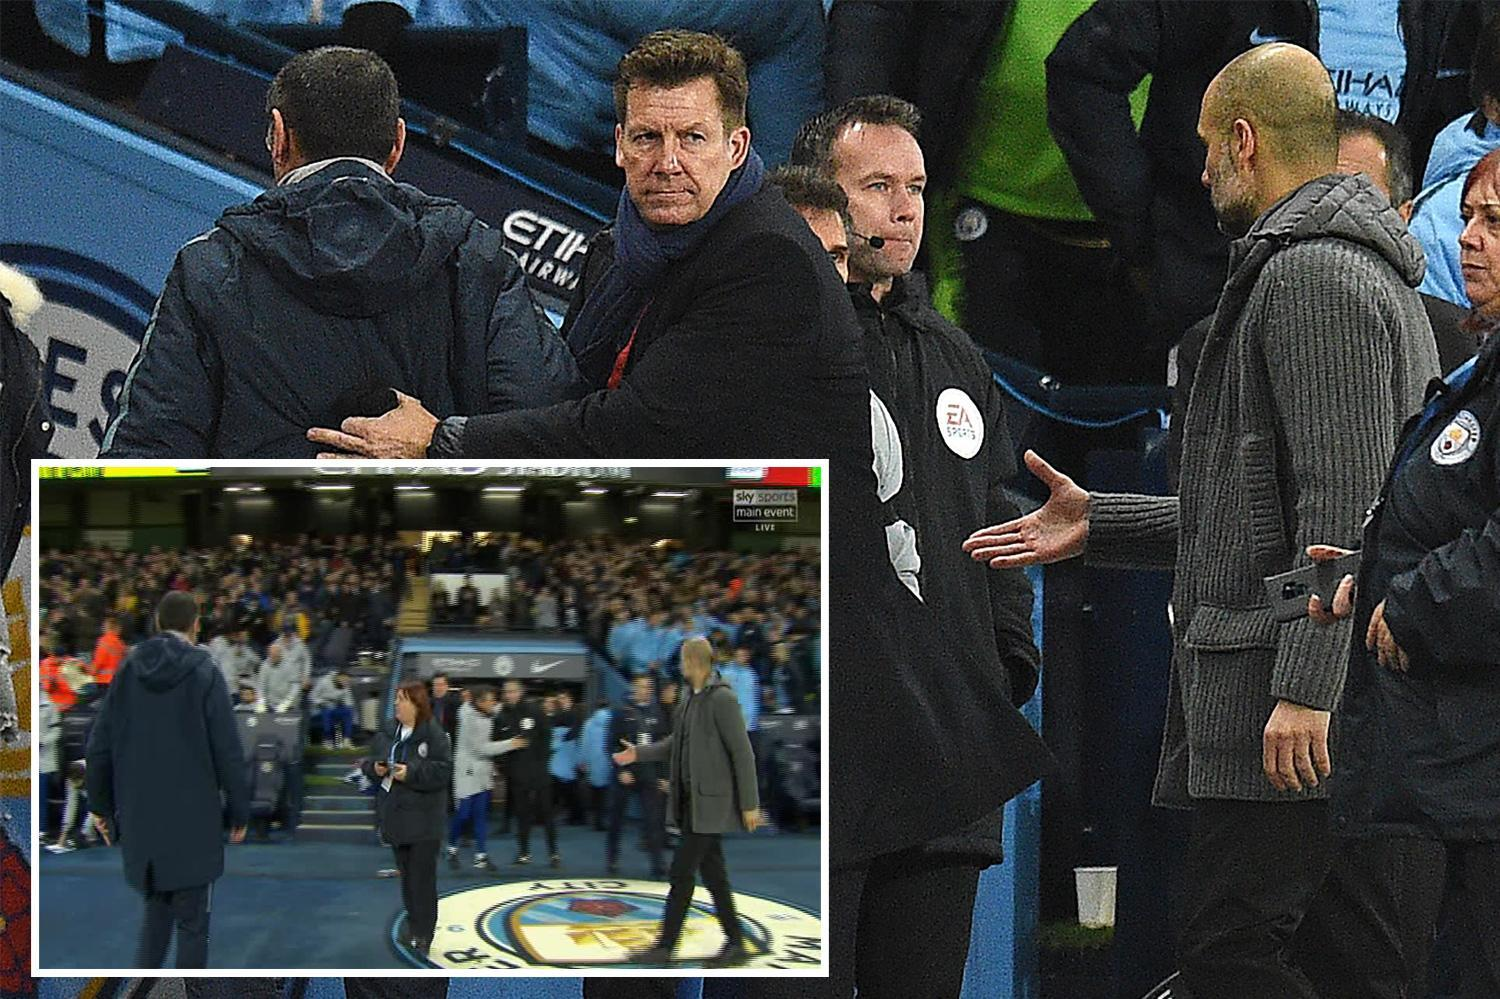 Chelsea boss Sarri refuses to shake Guardiola's hand after Man City thump Blues